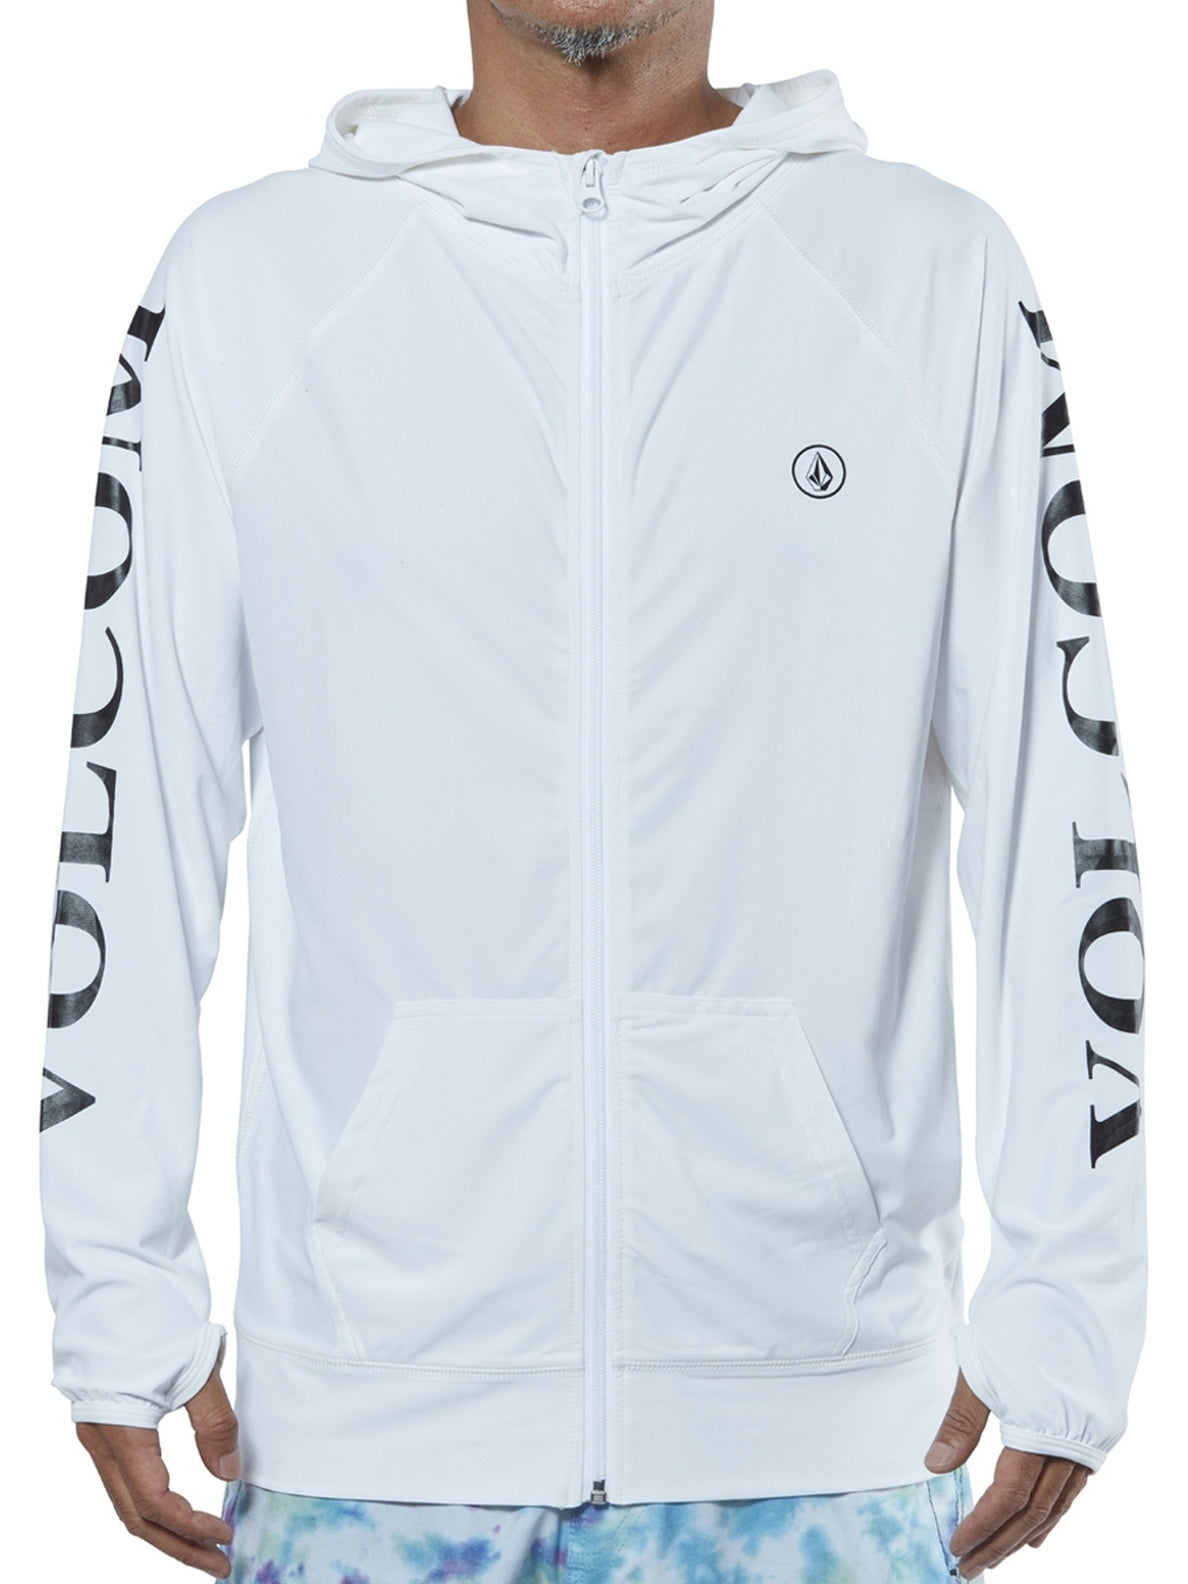 Trademark Surf Zip Hood - White